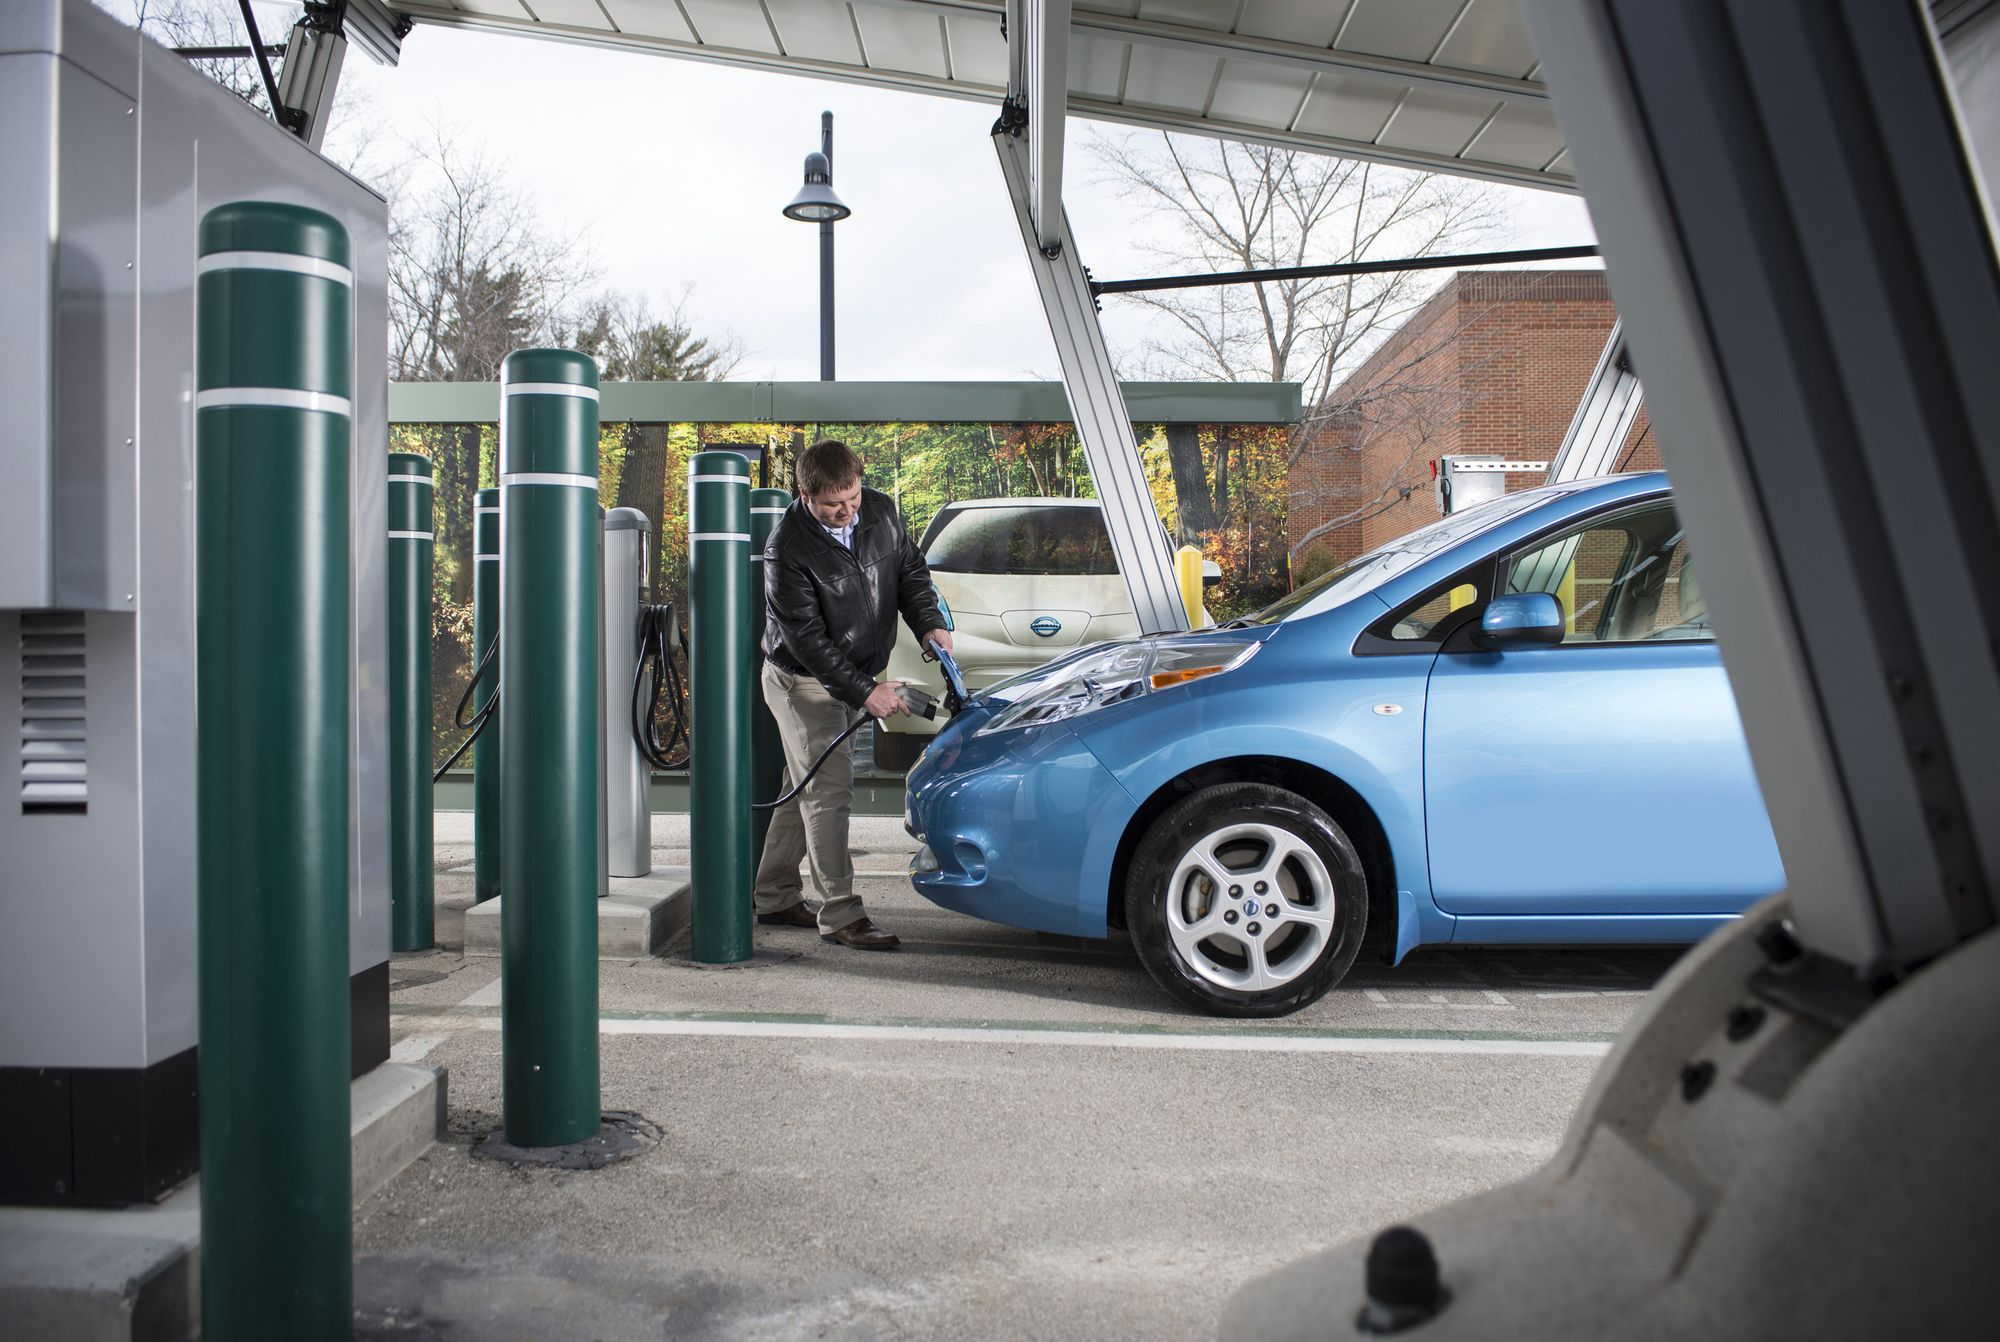 New Technology Could Recharge Electric Cars in Five Minutes ... Maybe